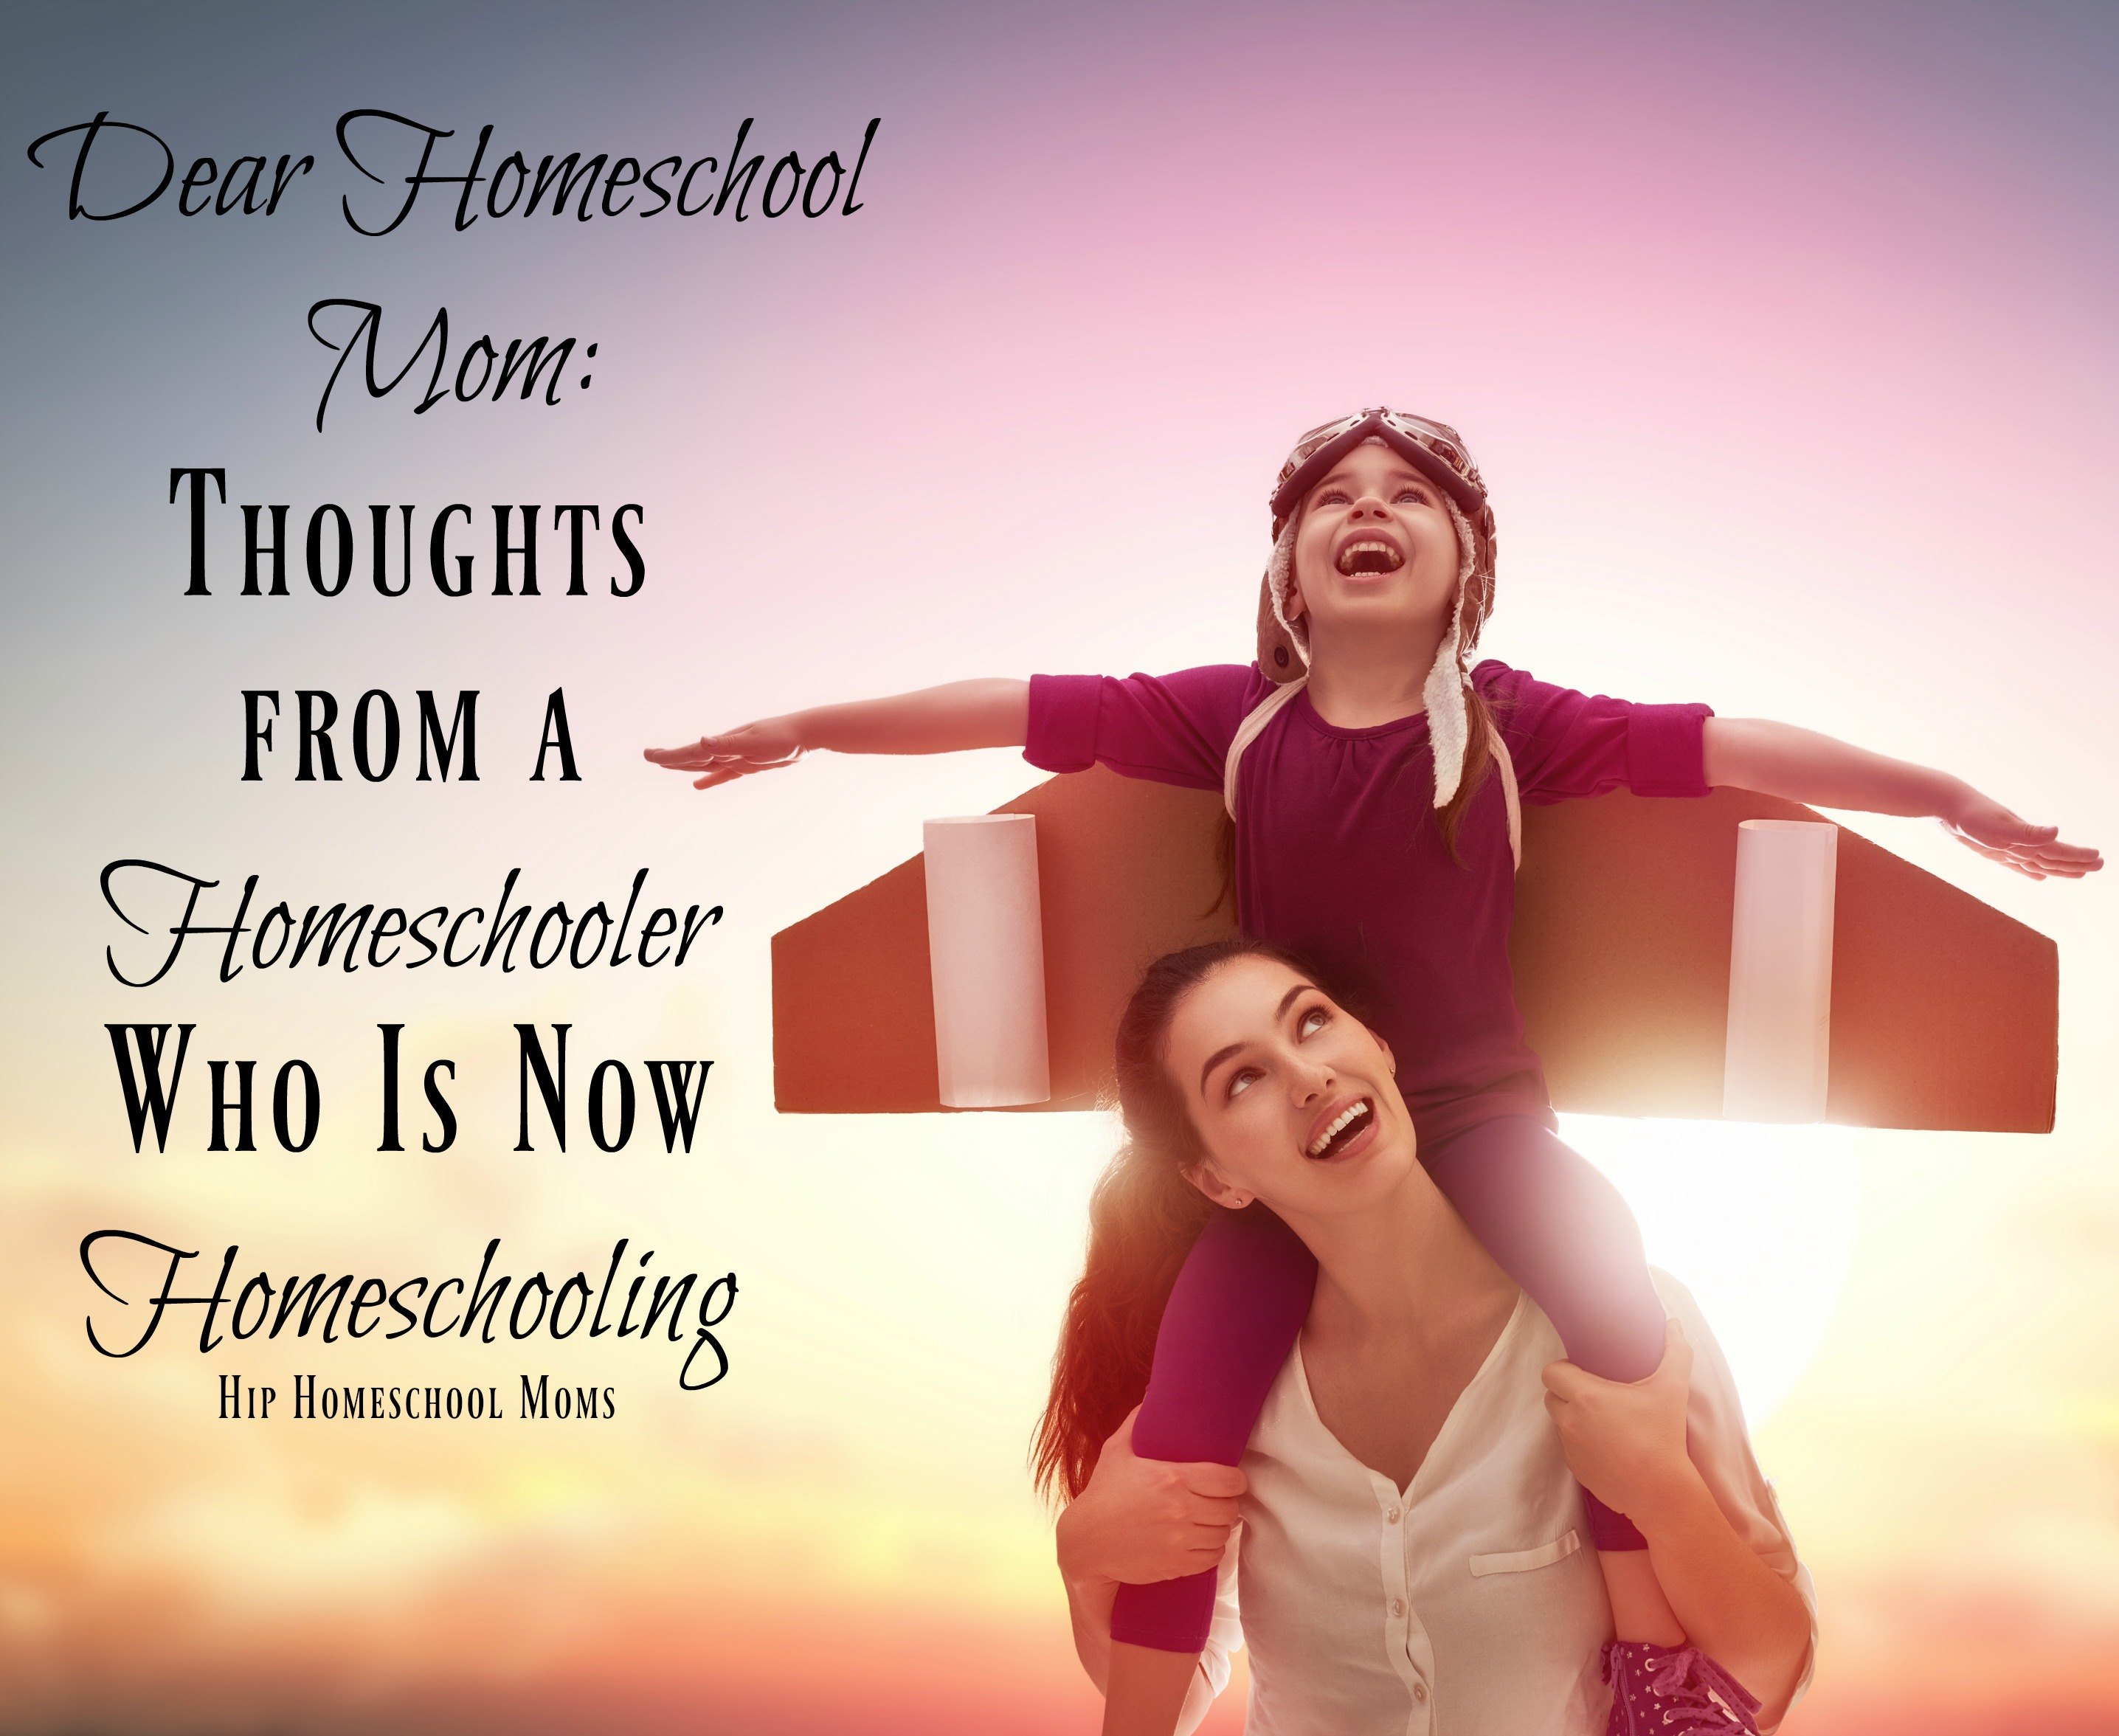 Thoughts from a Homeschooler Who Is Now Homeschooling